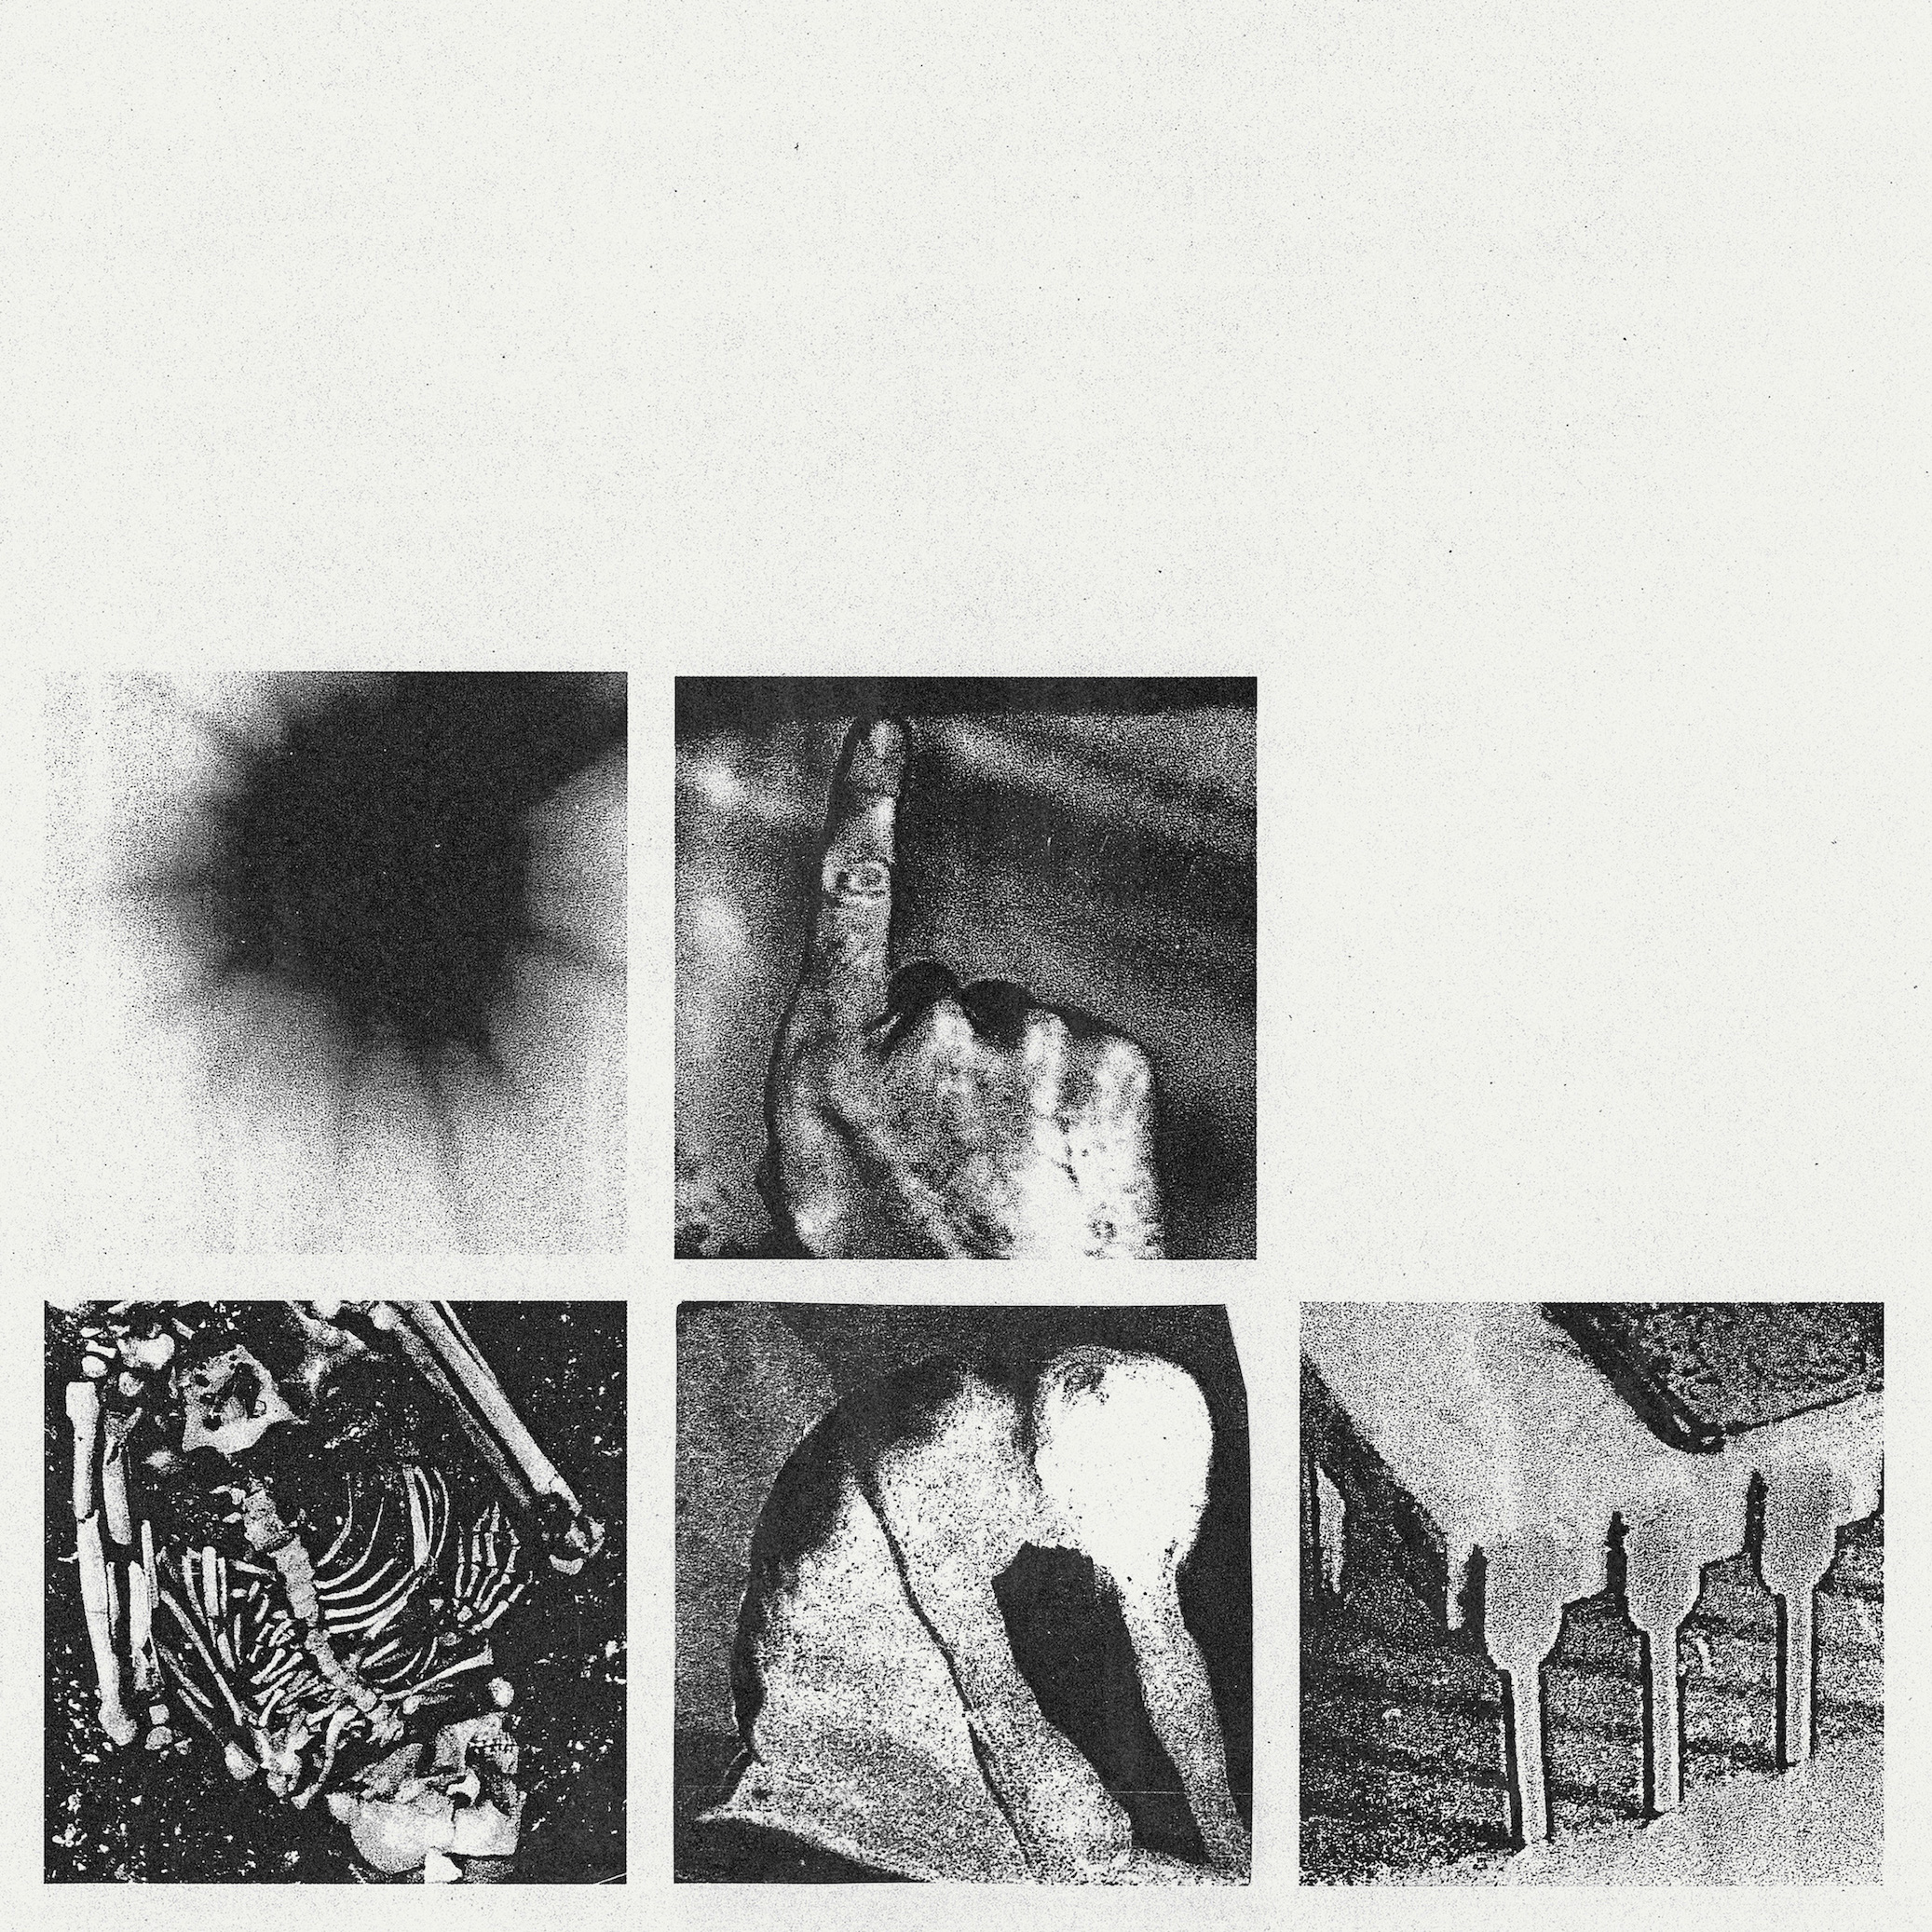 Nine Inch Nails' Bad Witch Artwork